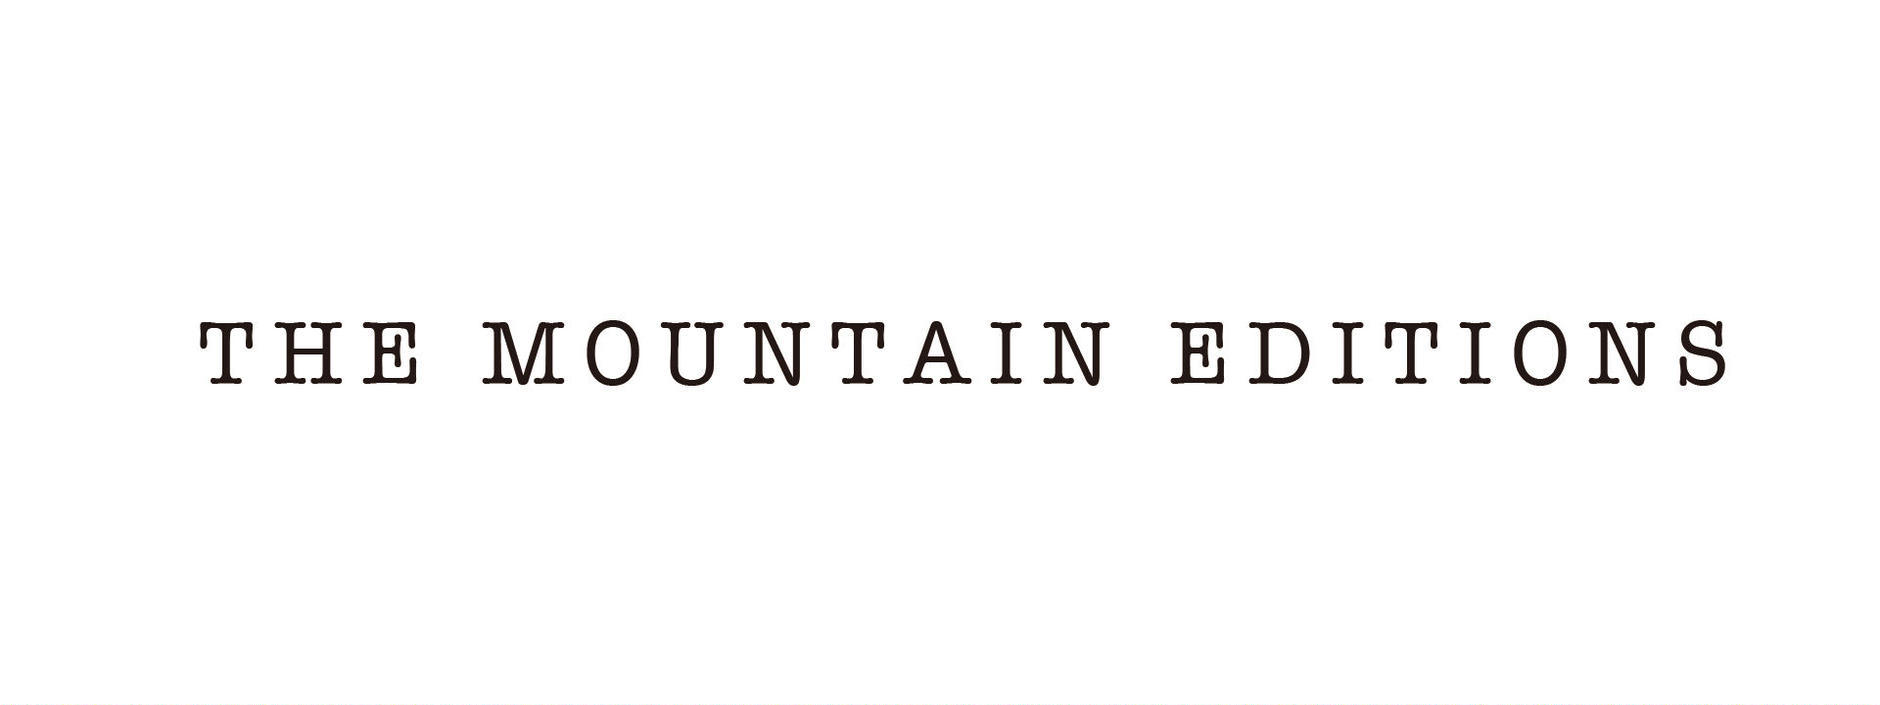 THE MOUNTAIN EDITIONS